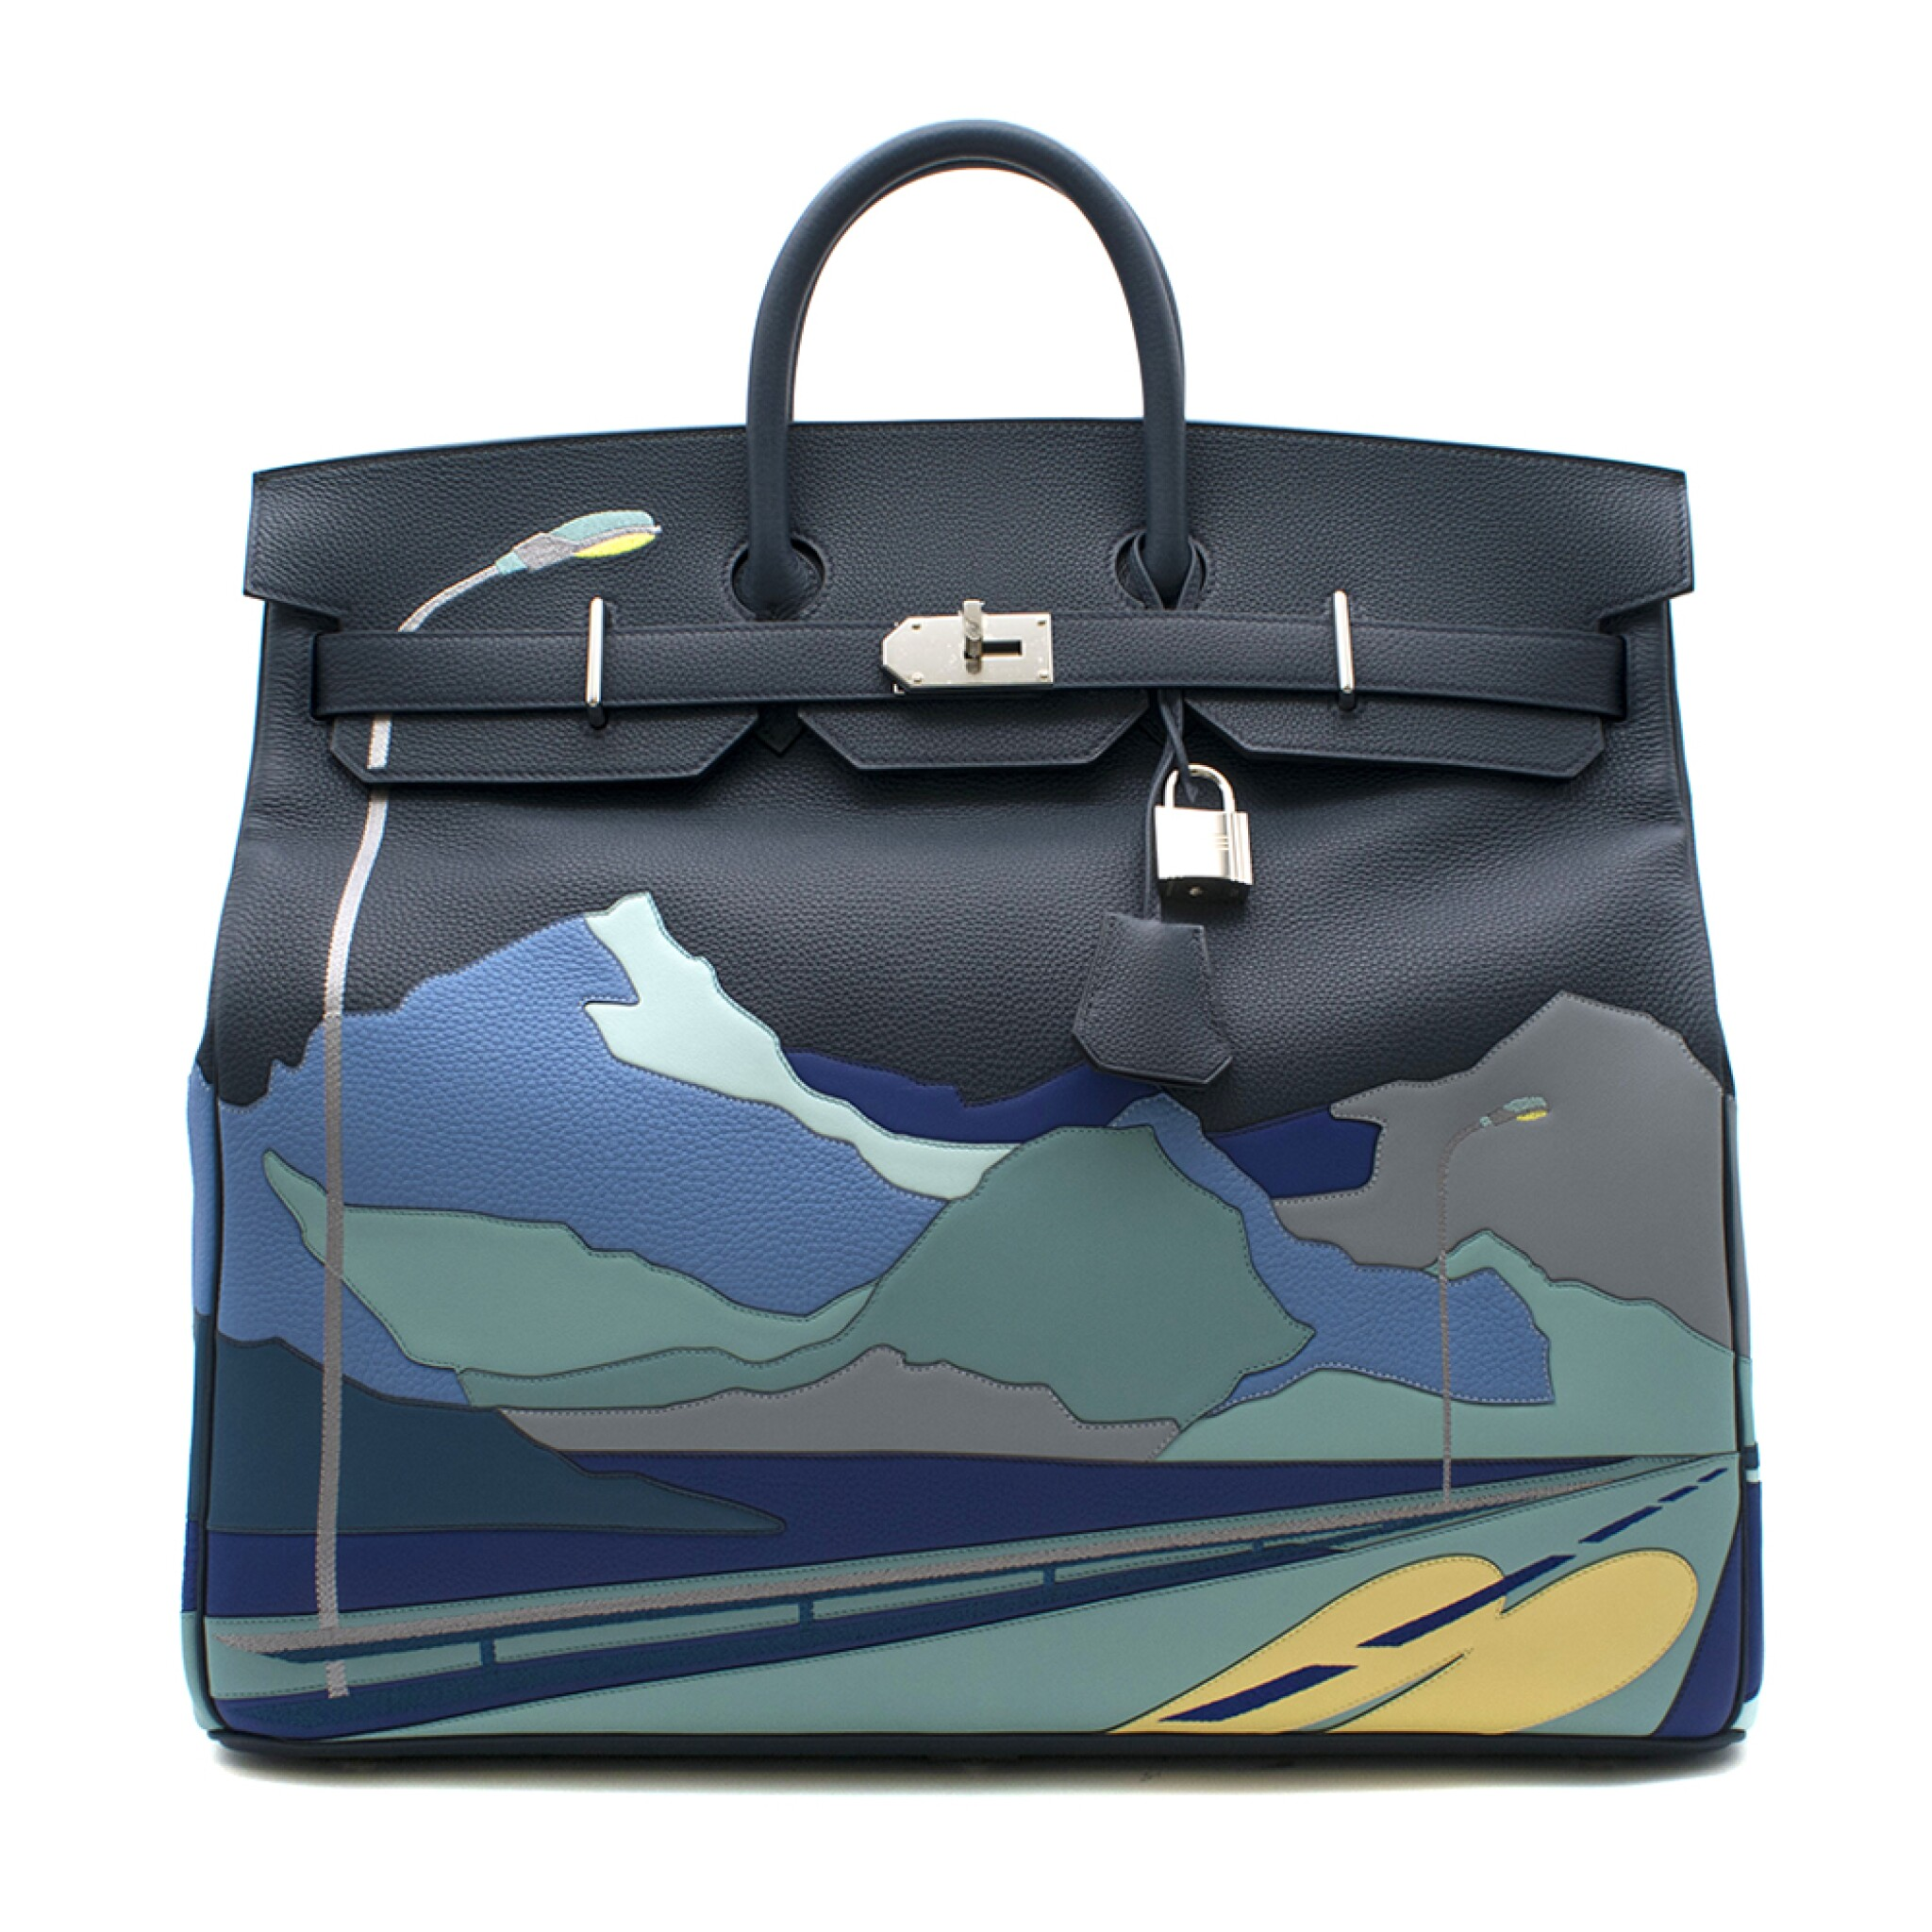 View full screen - View 1 of Lot 108. HERMÈS | BLUE DE PRUSSE LIMITED EDITION ENDLESS ROAD BIRKIN 50 HAUTE Á COURROIERS IN TOGO, SWIFT AND CLEMENCE LEATHER WITH PALLADIUM HARDWARE, 2019.